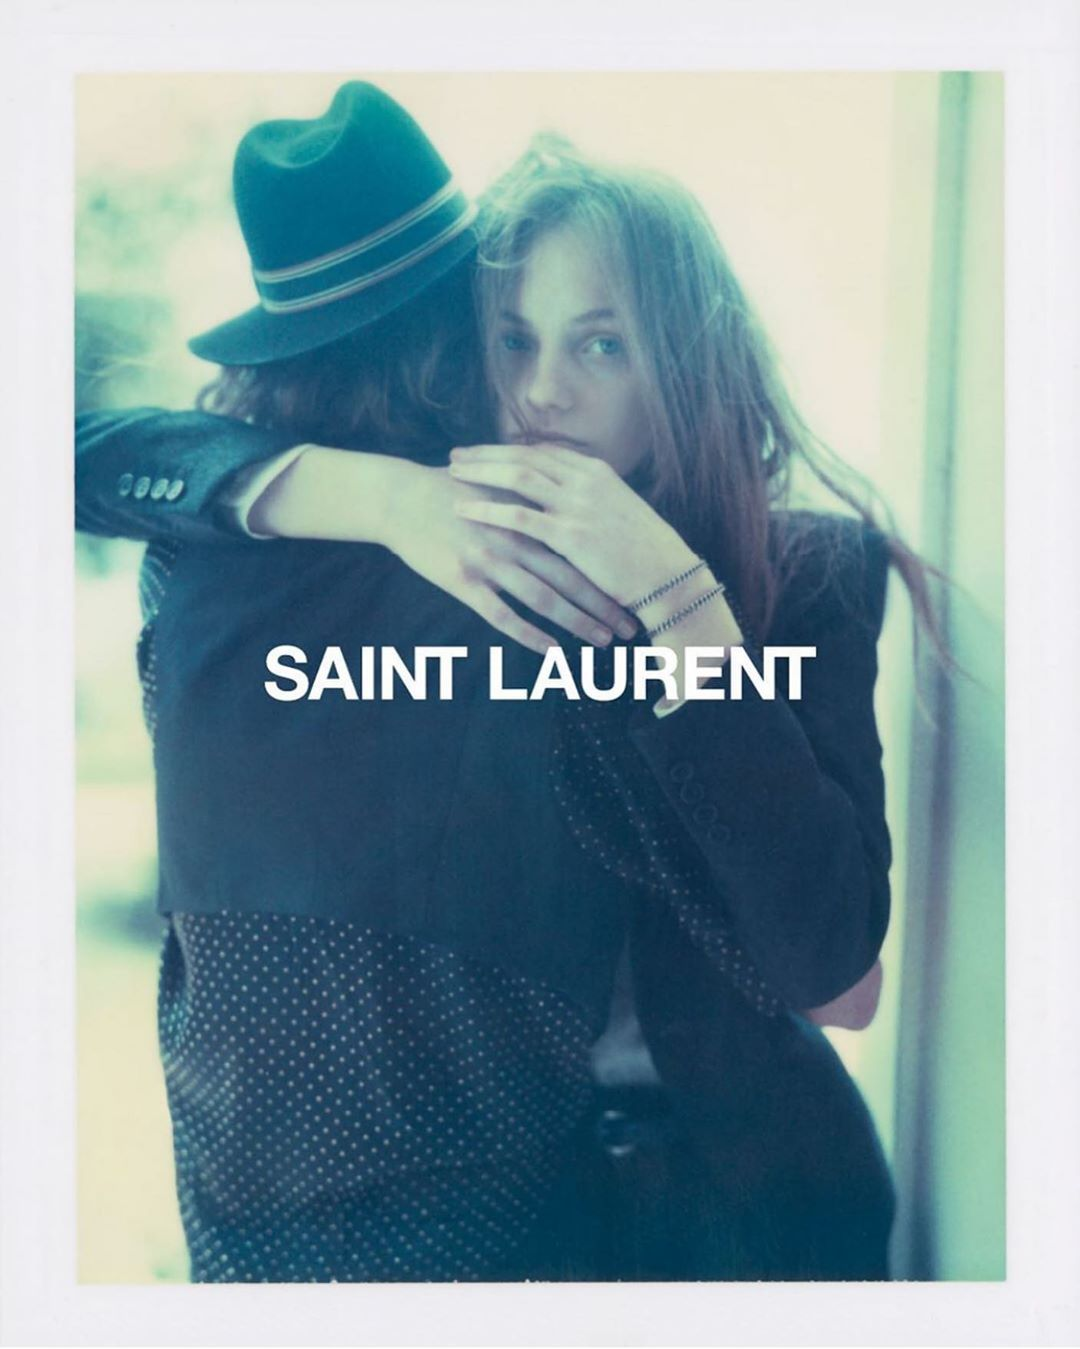 Saint Laurent Spring 2020 Campaign by Gray Sorrenti